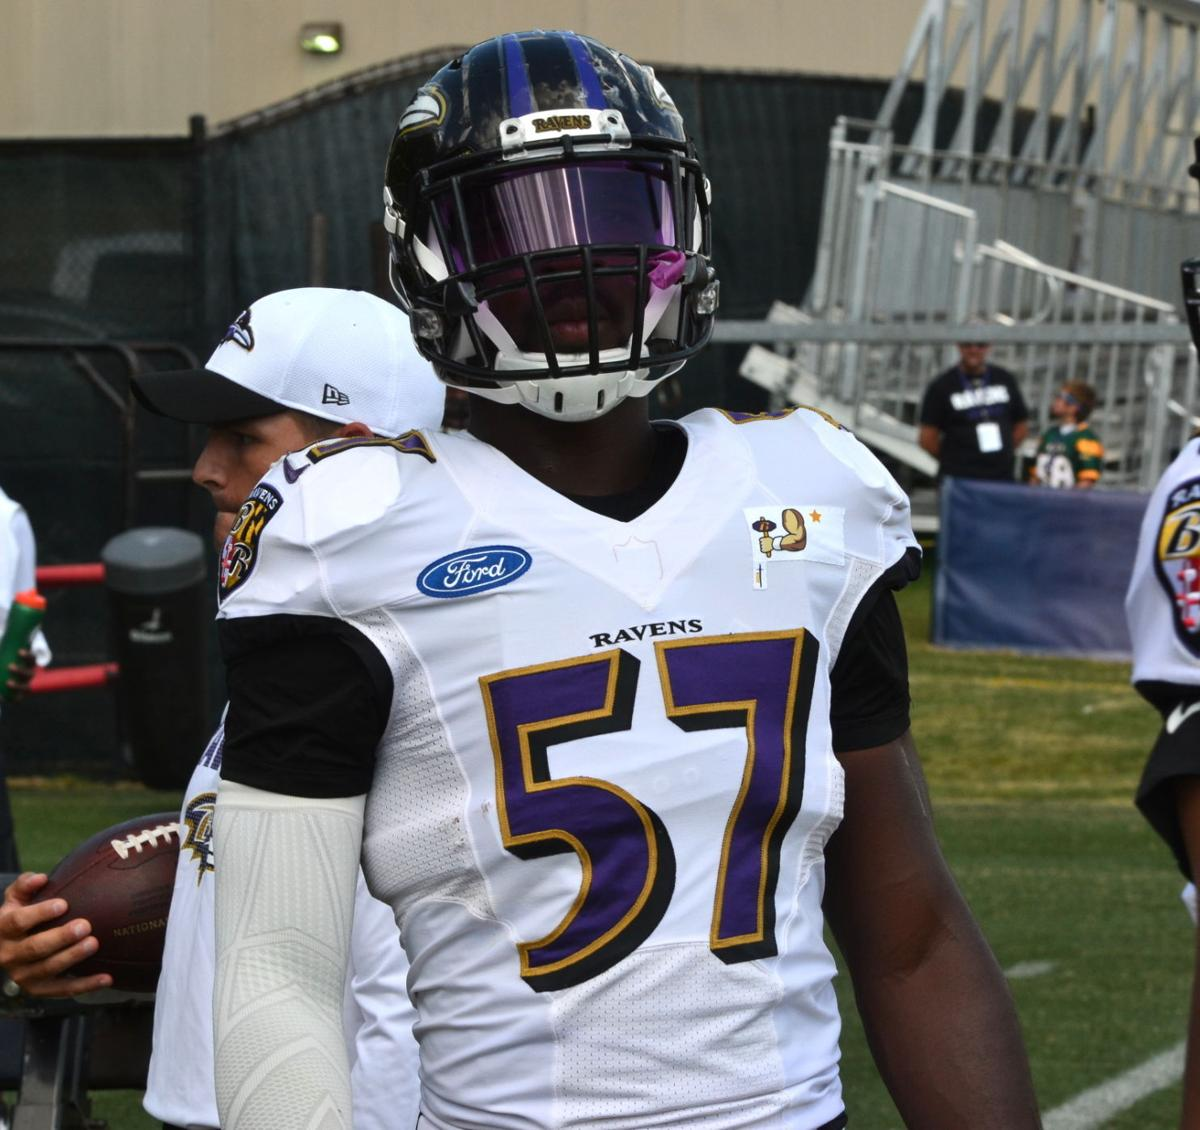 Mosley Ravens to face Mack Raiders Professional